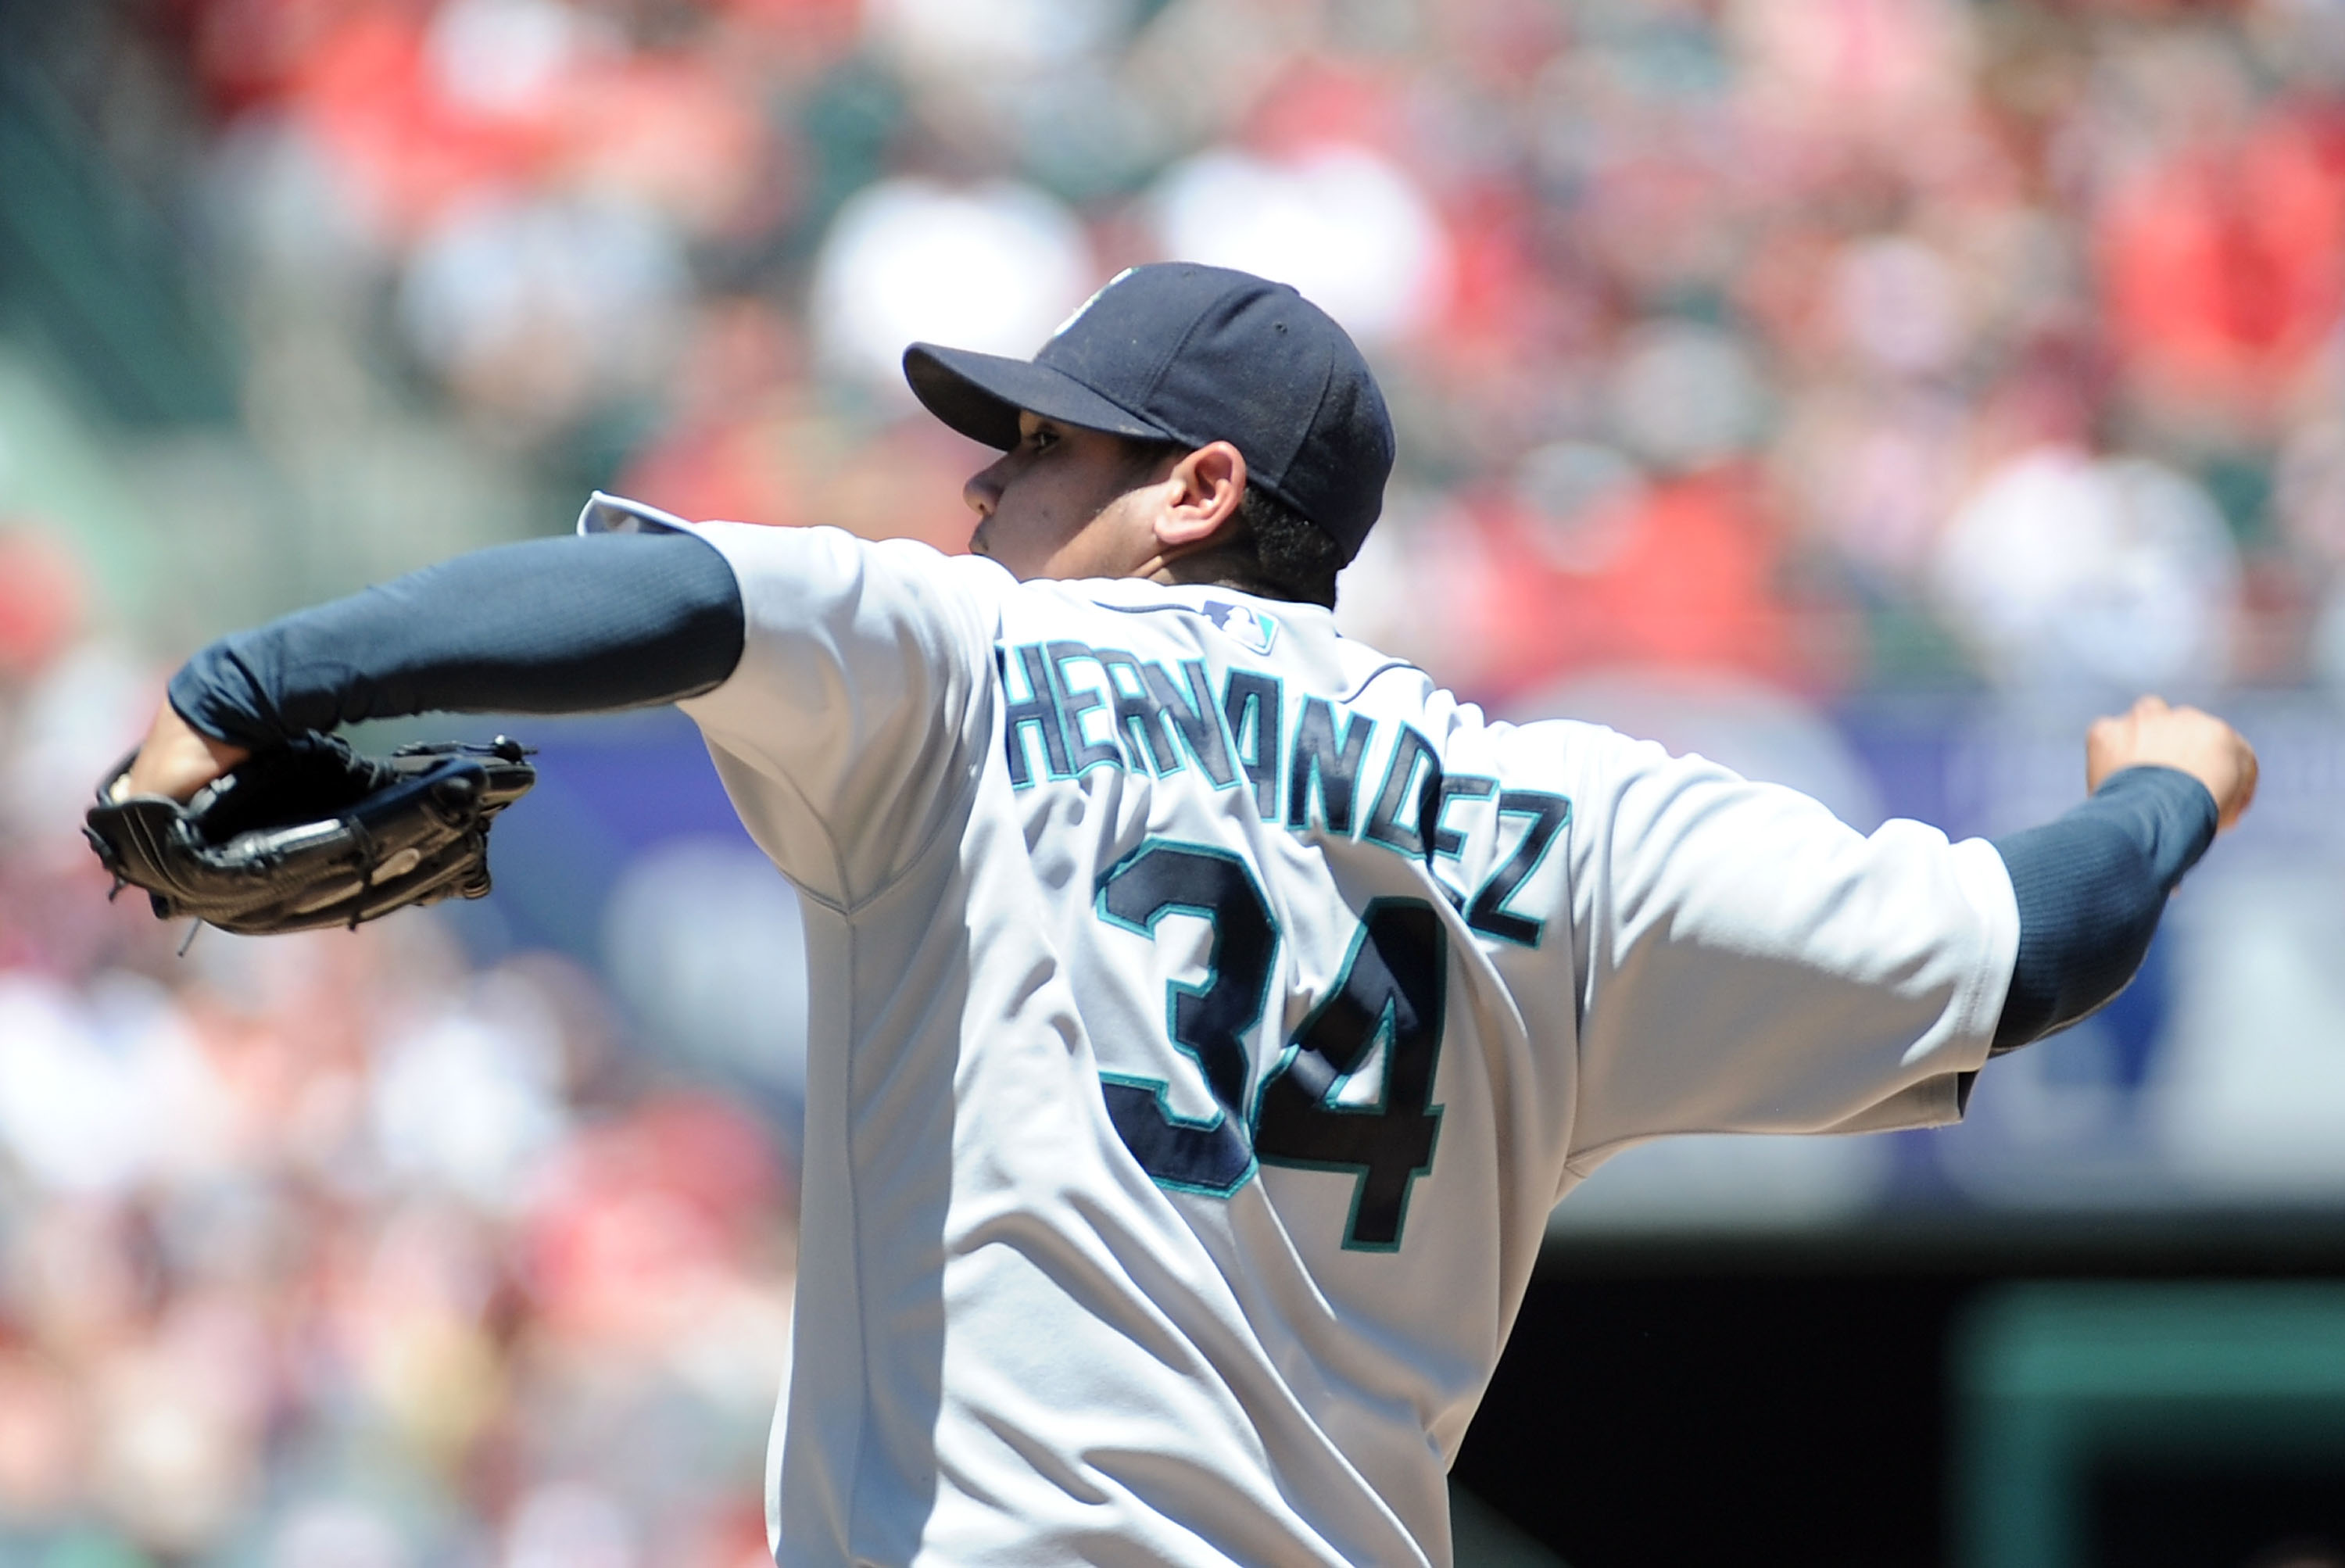 ANAHEIM, CA - MAY 29:  Felix Hernandez #34 of the Seattle Mariners pitches against the Los Angeles Angels during the first inning at Angel Stadium on May 29, 2010 in Anaheim, California.  (Photo by Harry How/Getty Images)